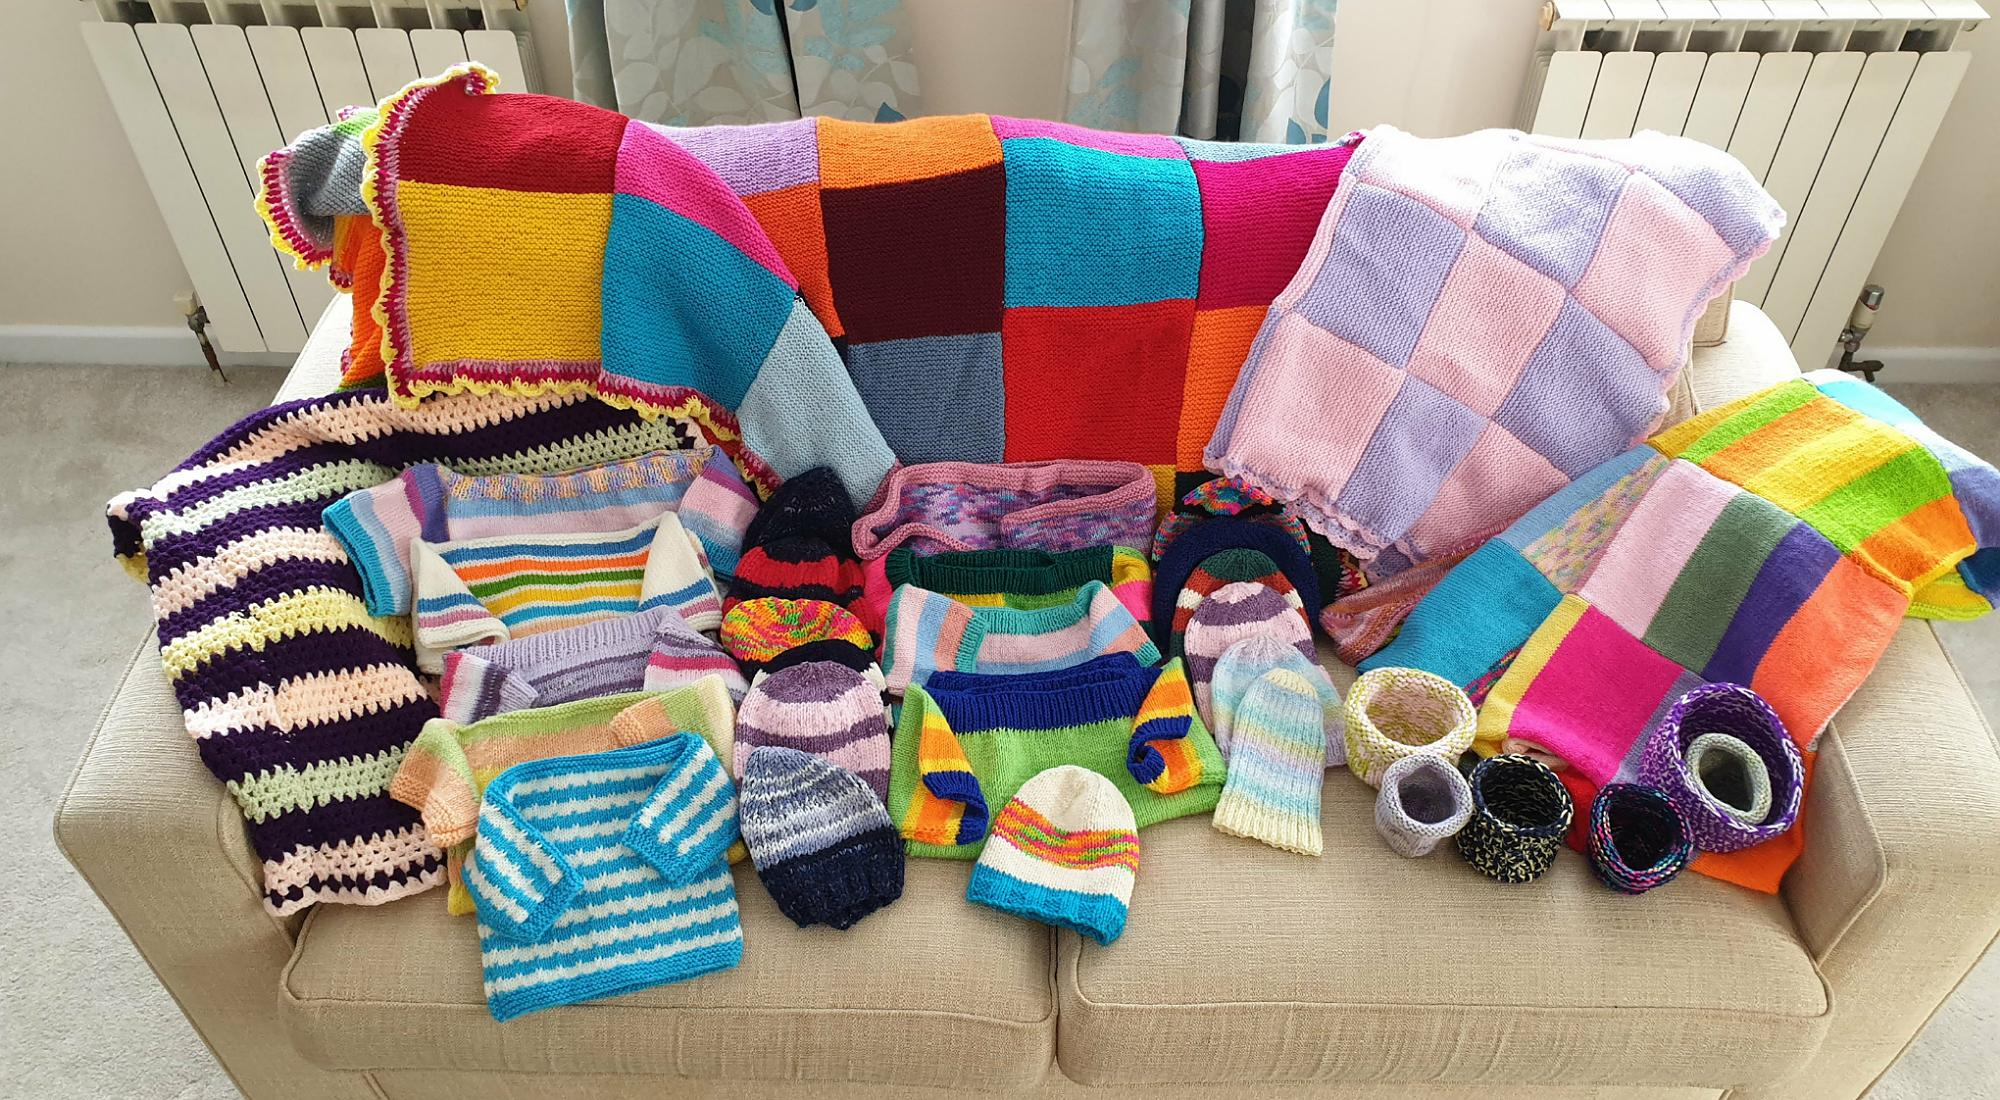 Made by Woolly Jumpers